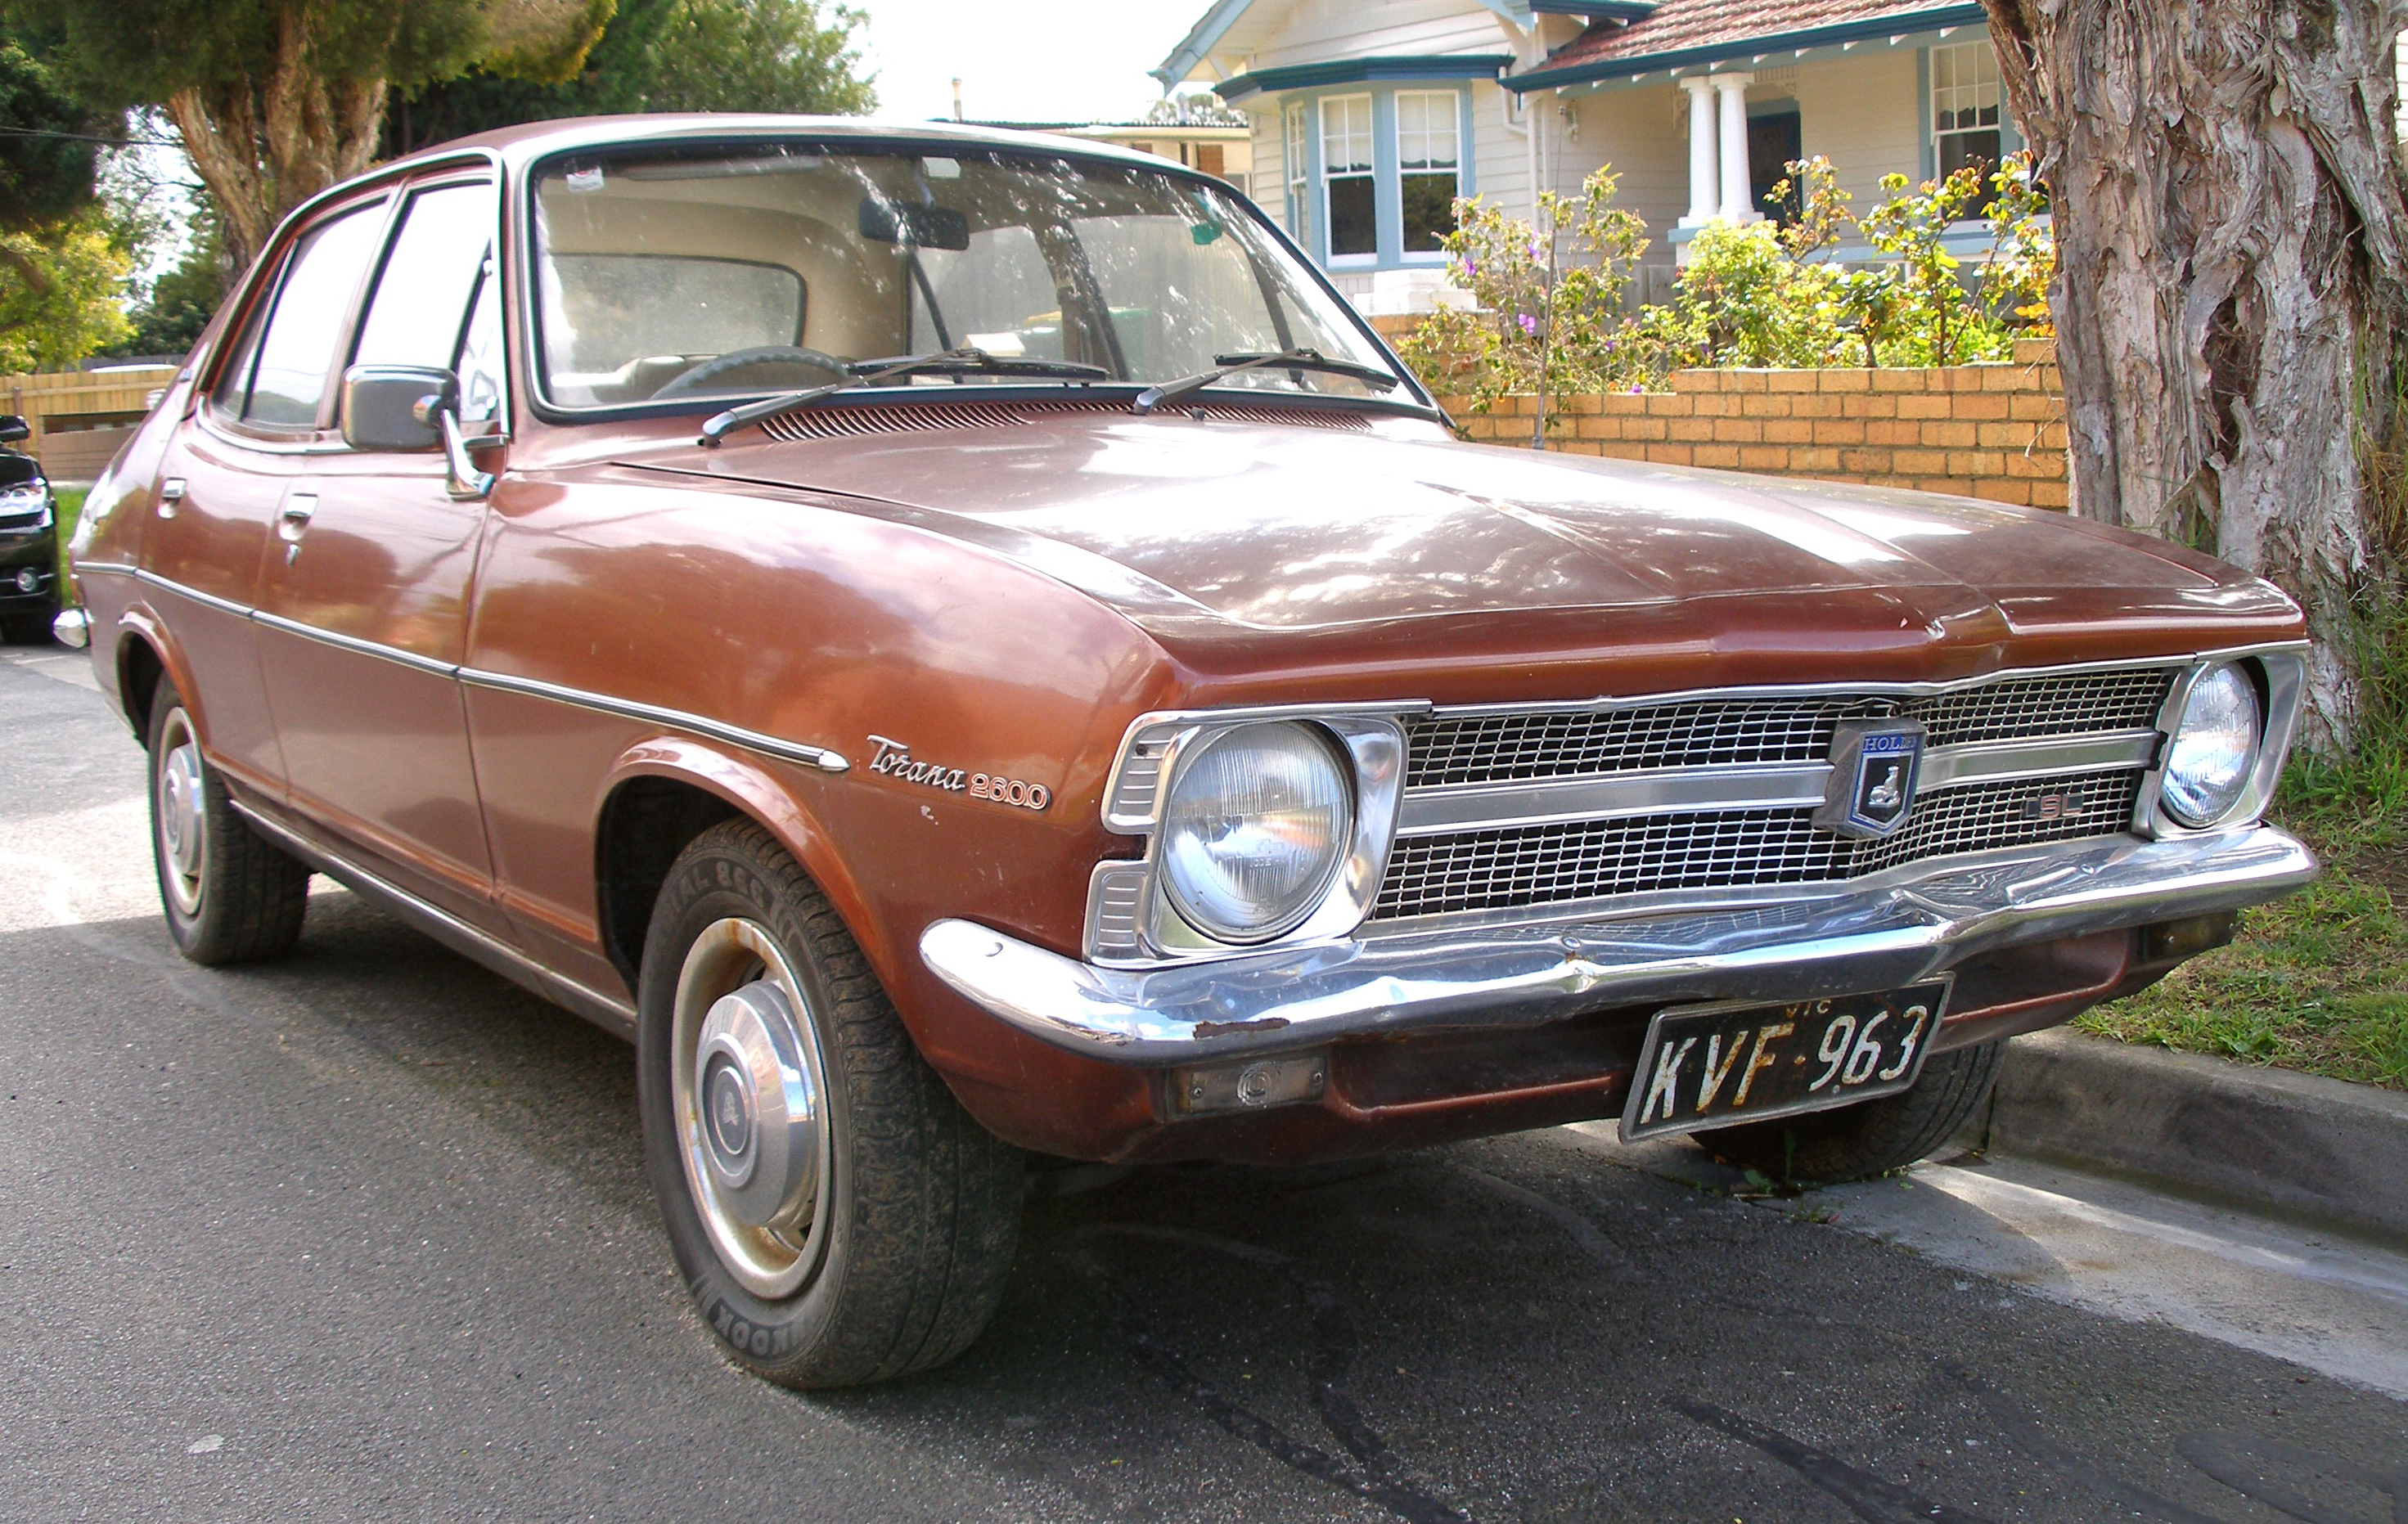 File 1969 1972 Holden LC Torana sedan 01 also Quick Switch furthermore Honda P 07 Ecu Wiring Diagram besides Switch Panels as well 3831718 Nitrous Outlet Dedicated Fuel System Questions. on wiring a race car diagram